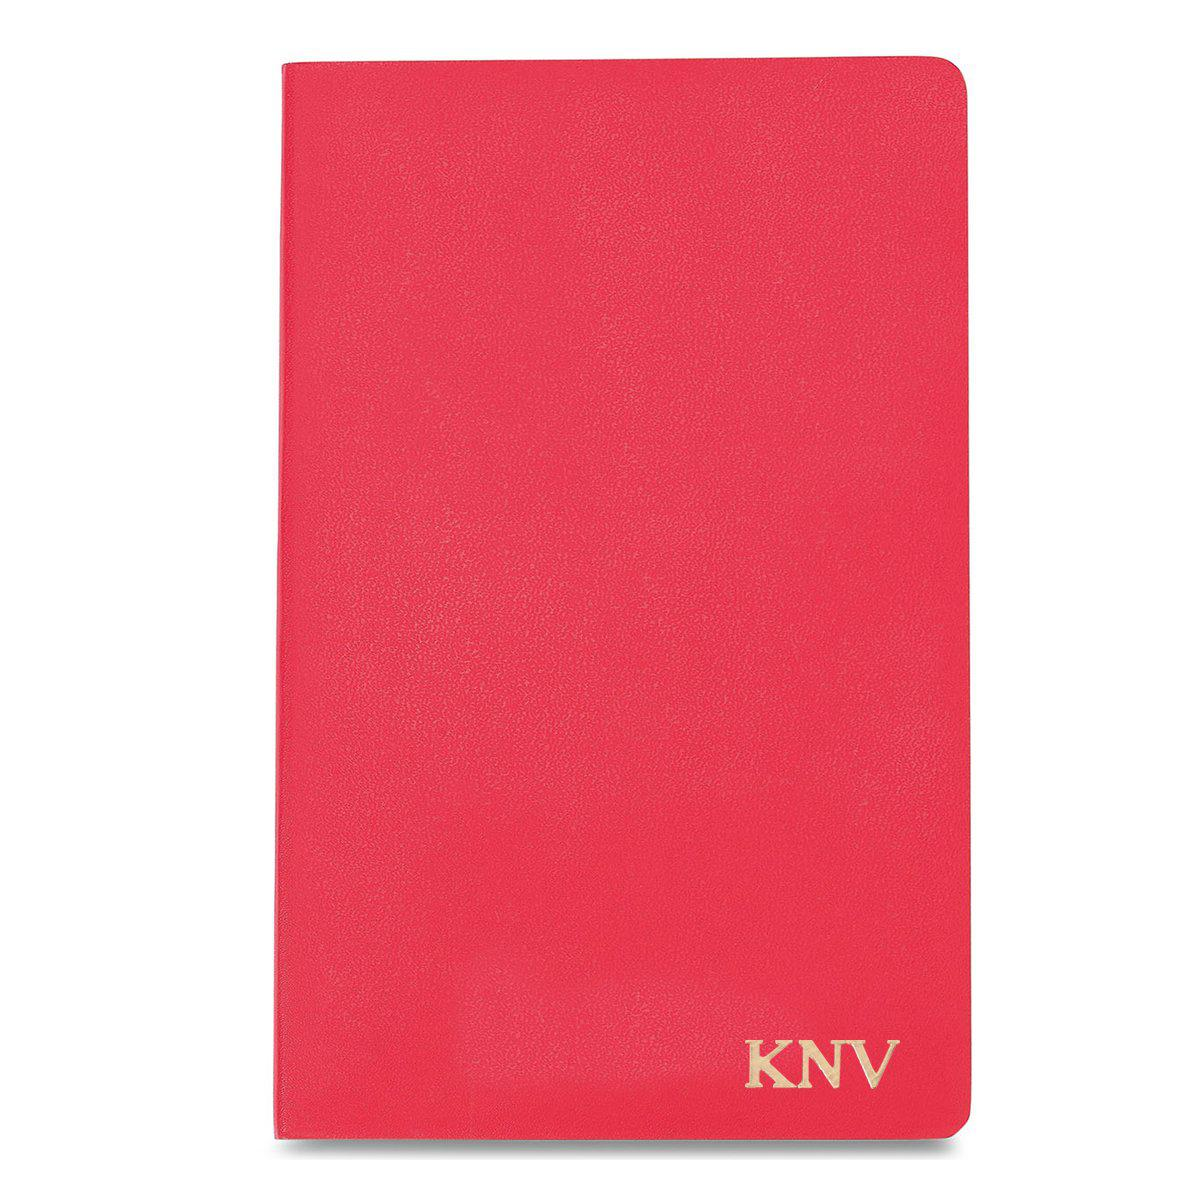 Personalized Moleskine® Notebook - Geranium Red